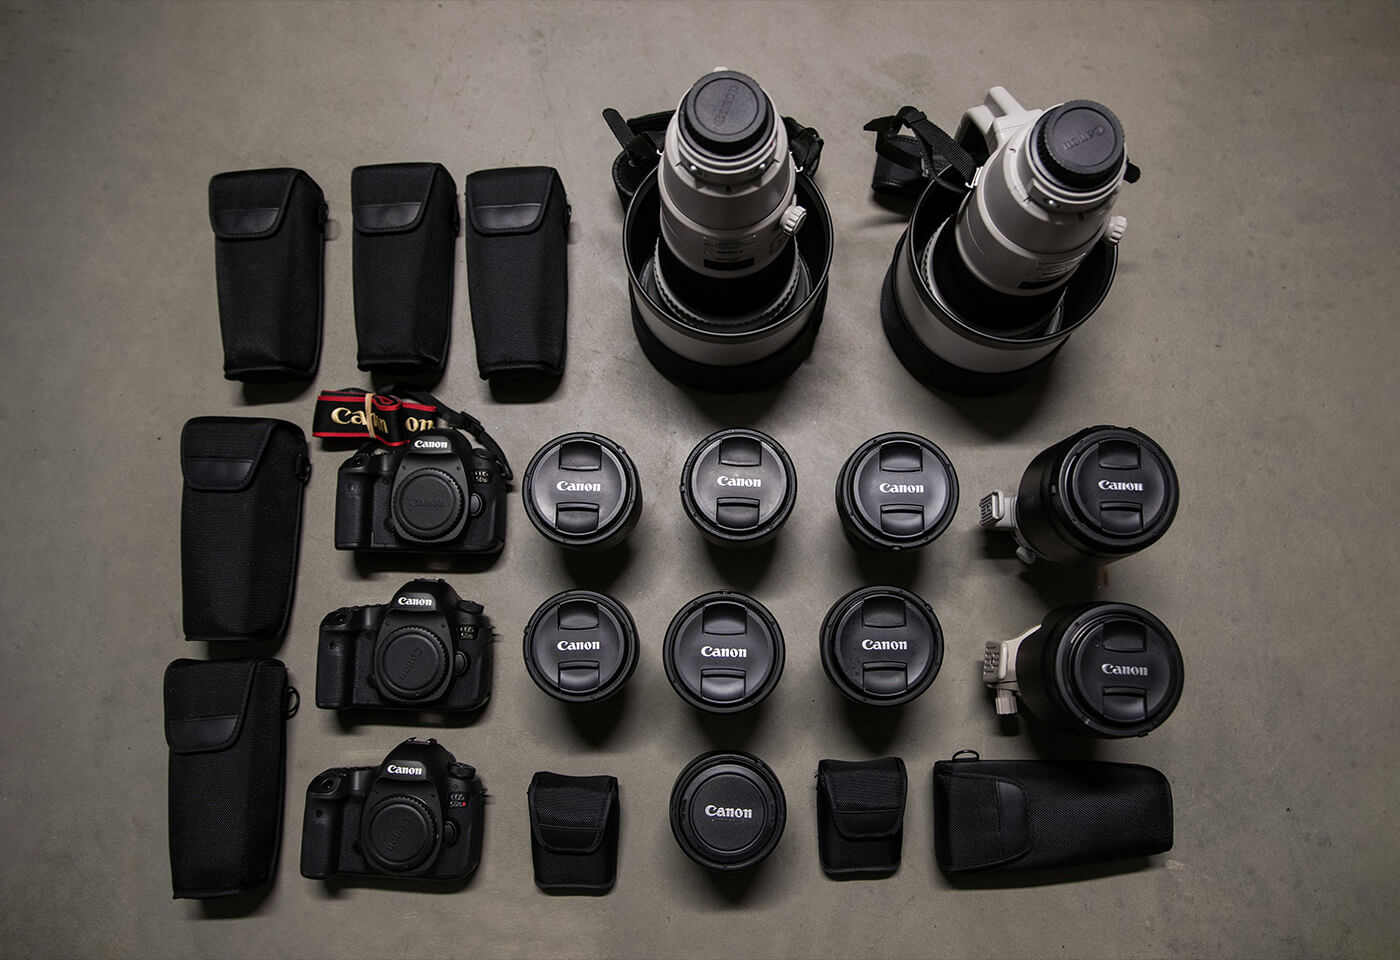 Flat lay image of Canon gear